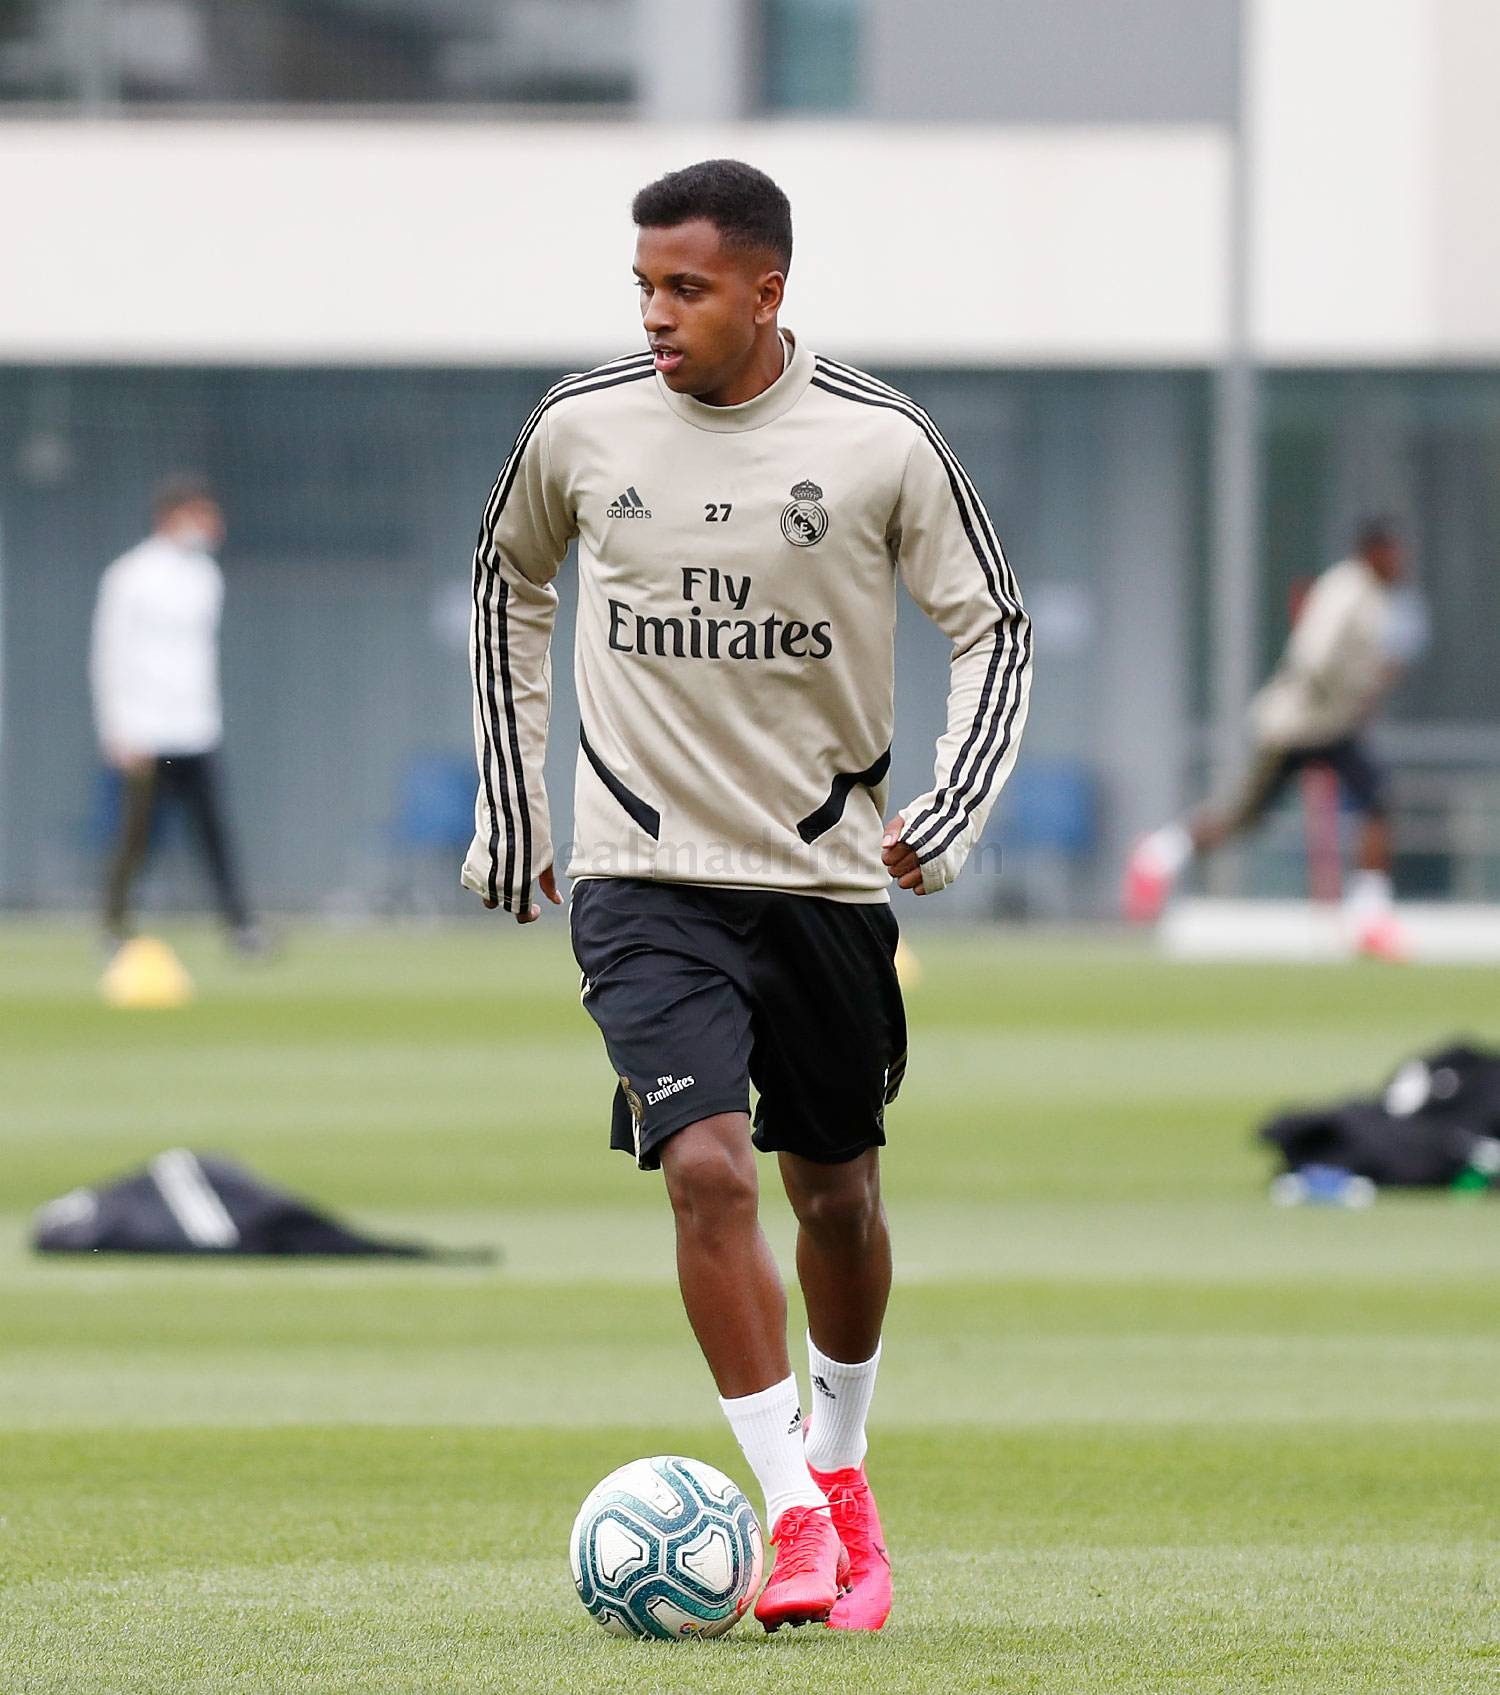 Real Madrid - Entrenamiento del Real Madrid  - 12-05-2020